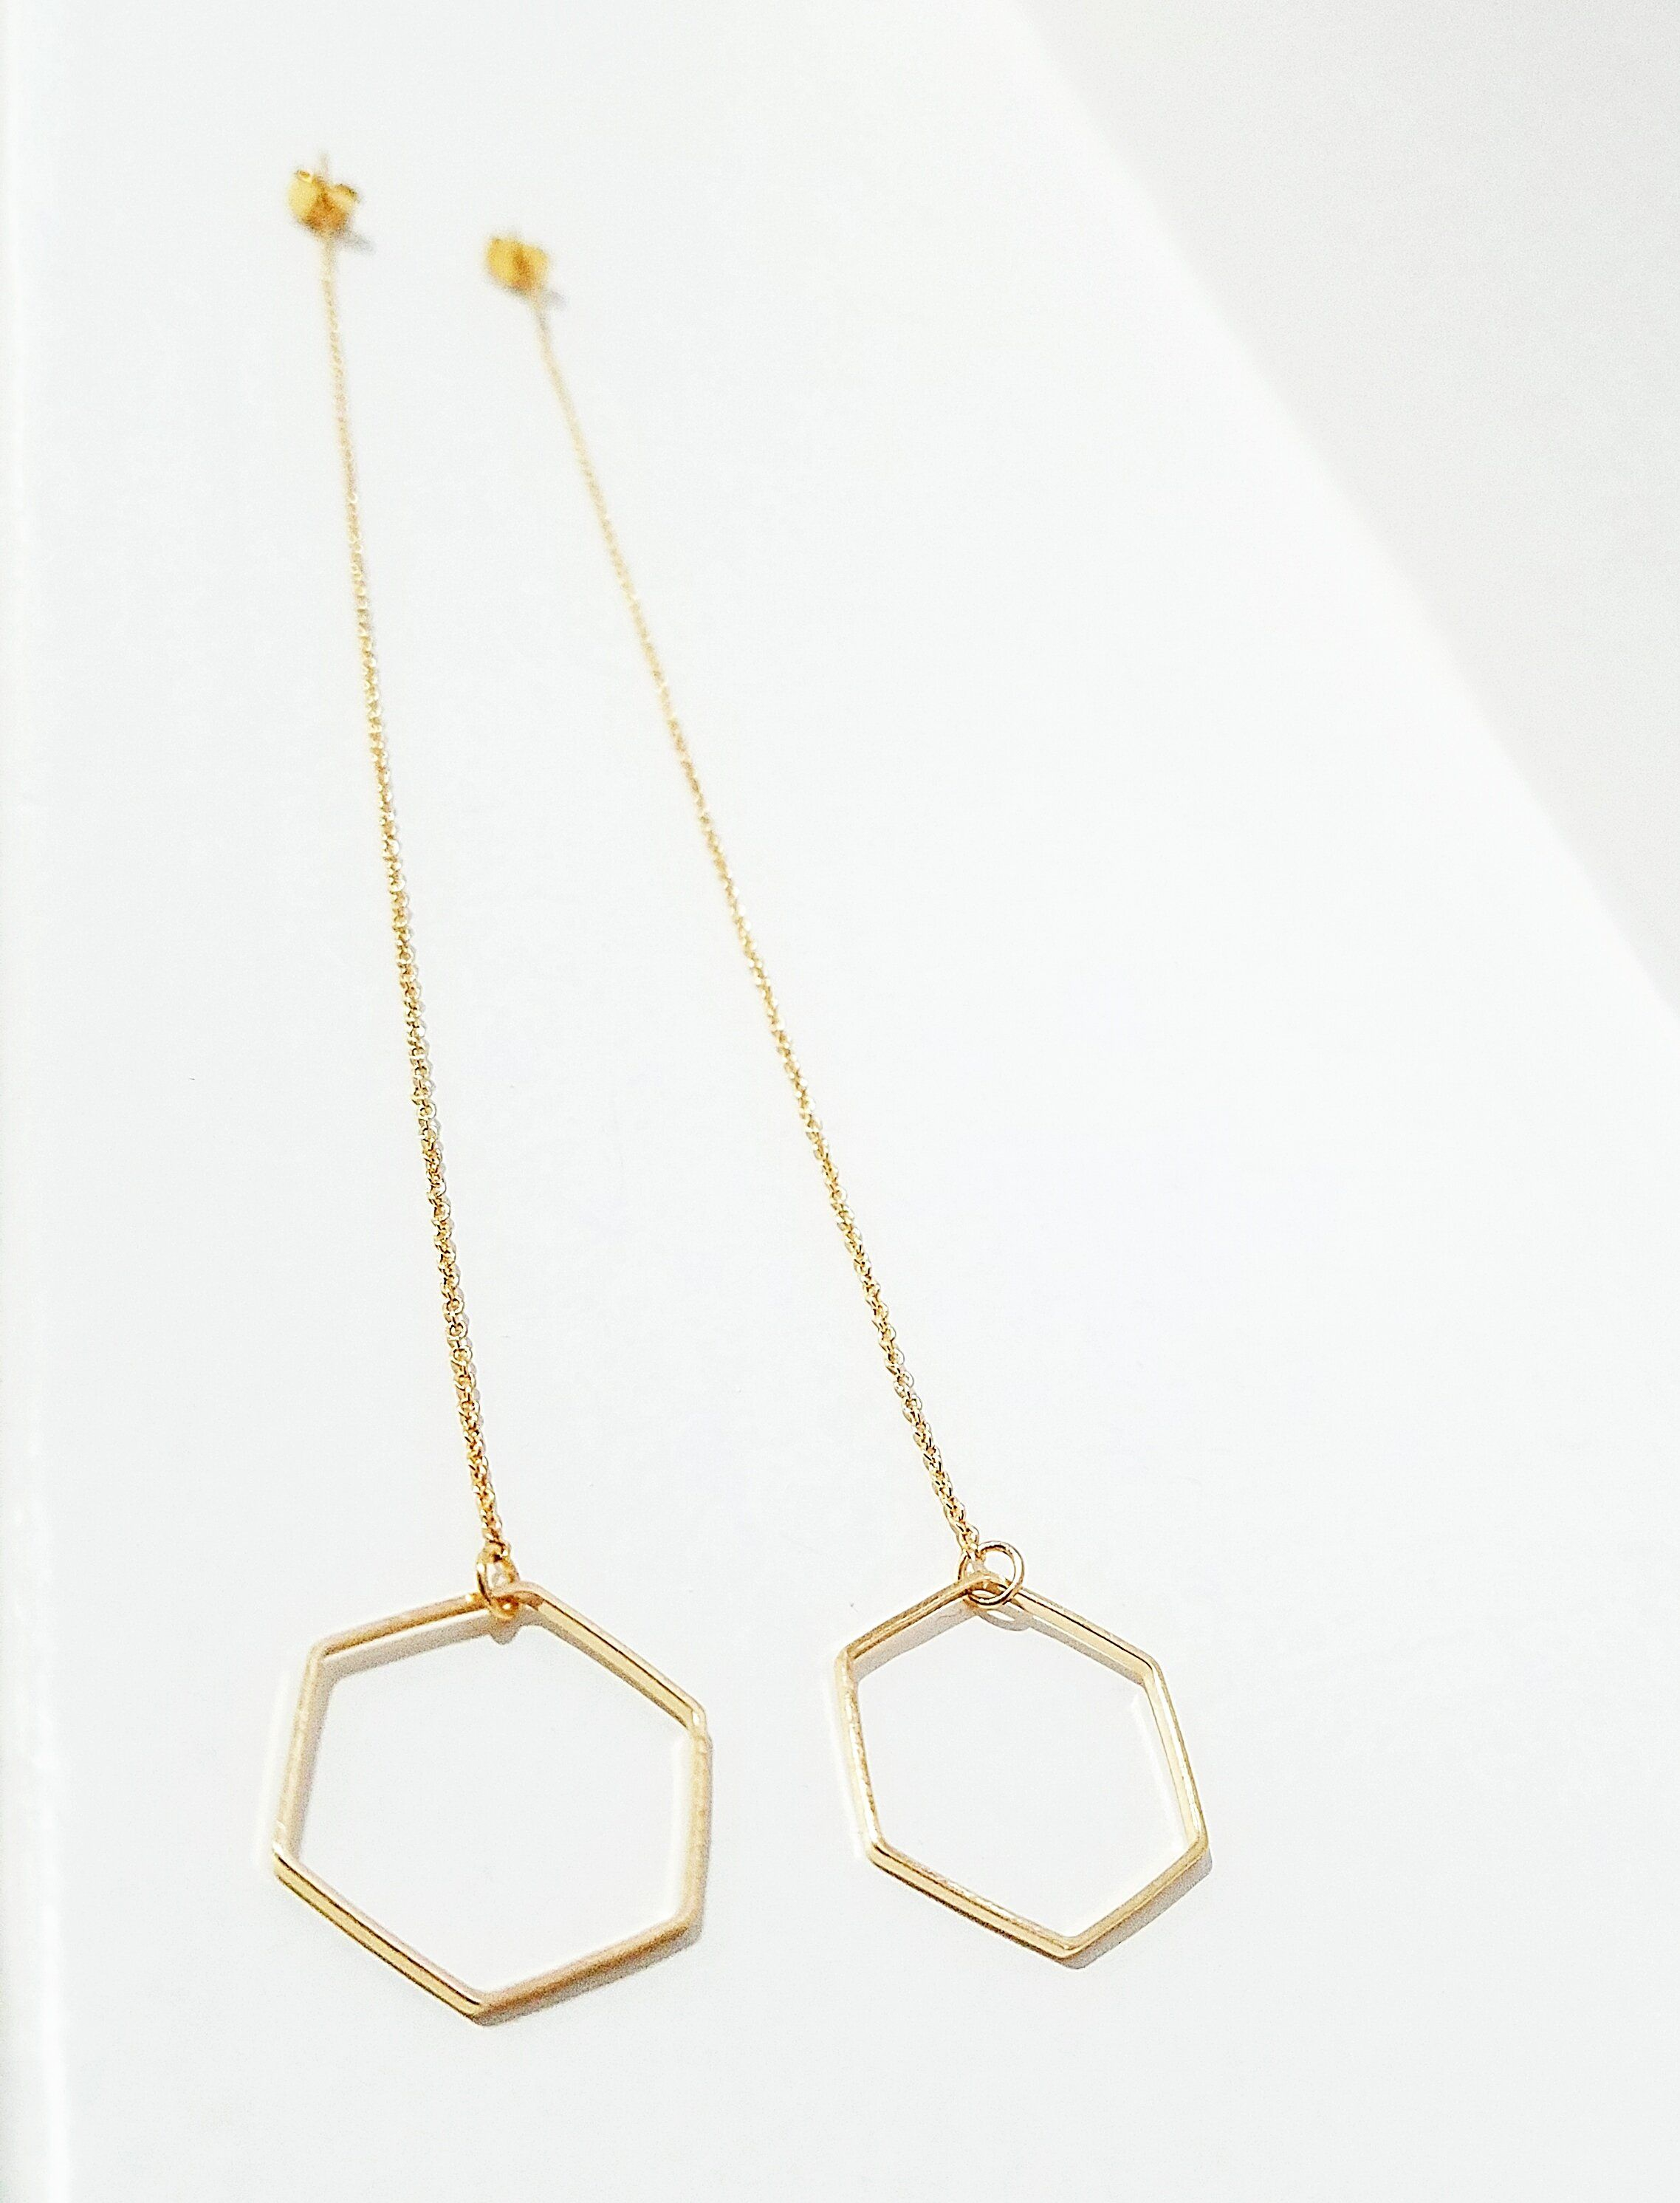 of studio img copy earrings objekt ananda hexagon ungphakorn melt raw hook products